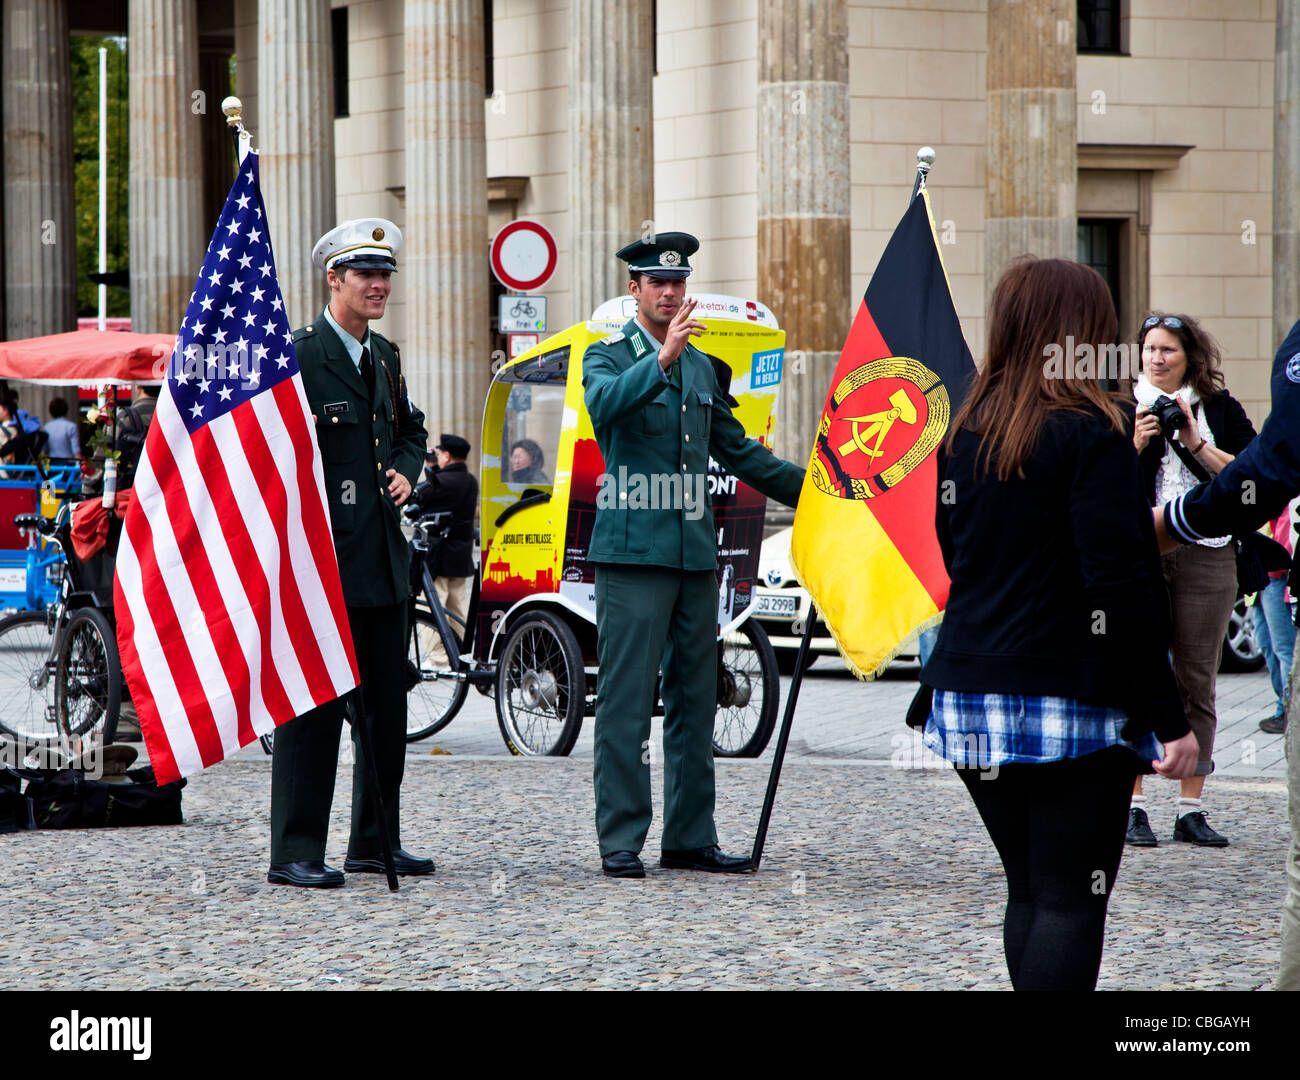 Actors dressed in American and East German military uniform posing for tourists in front of Brandenburg Gate, Berlin, - Stock Image